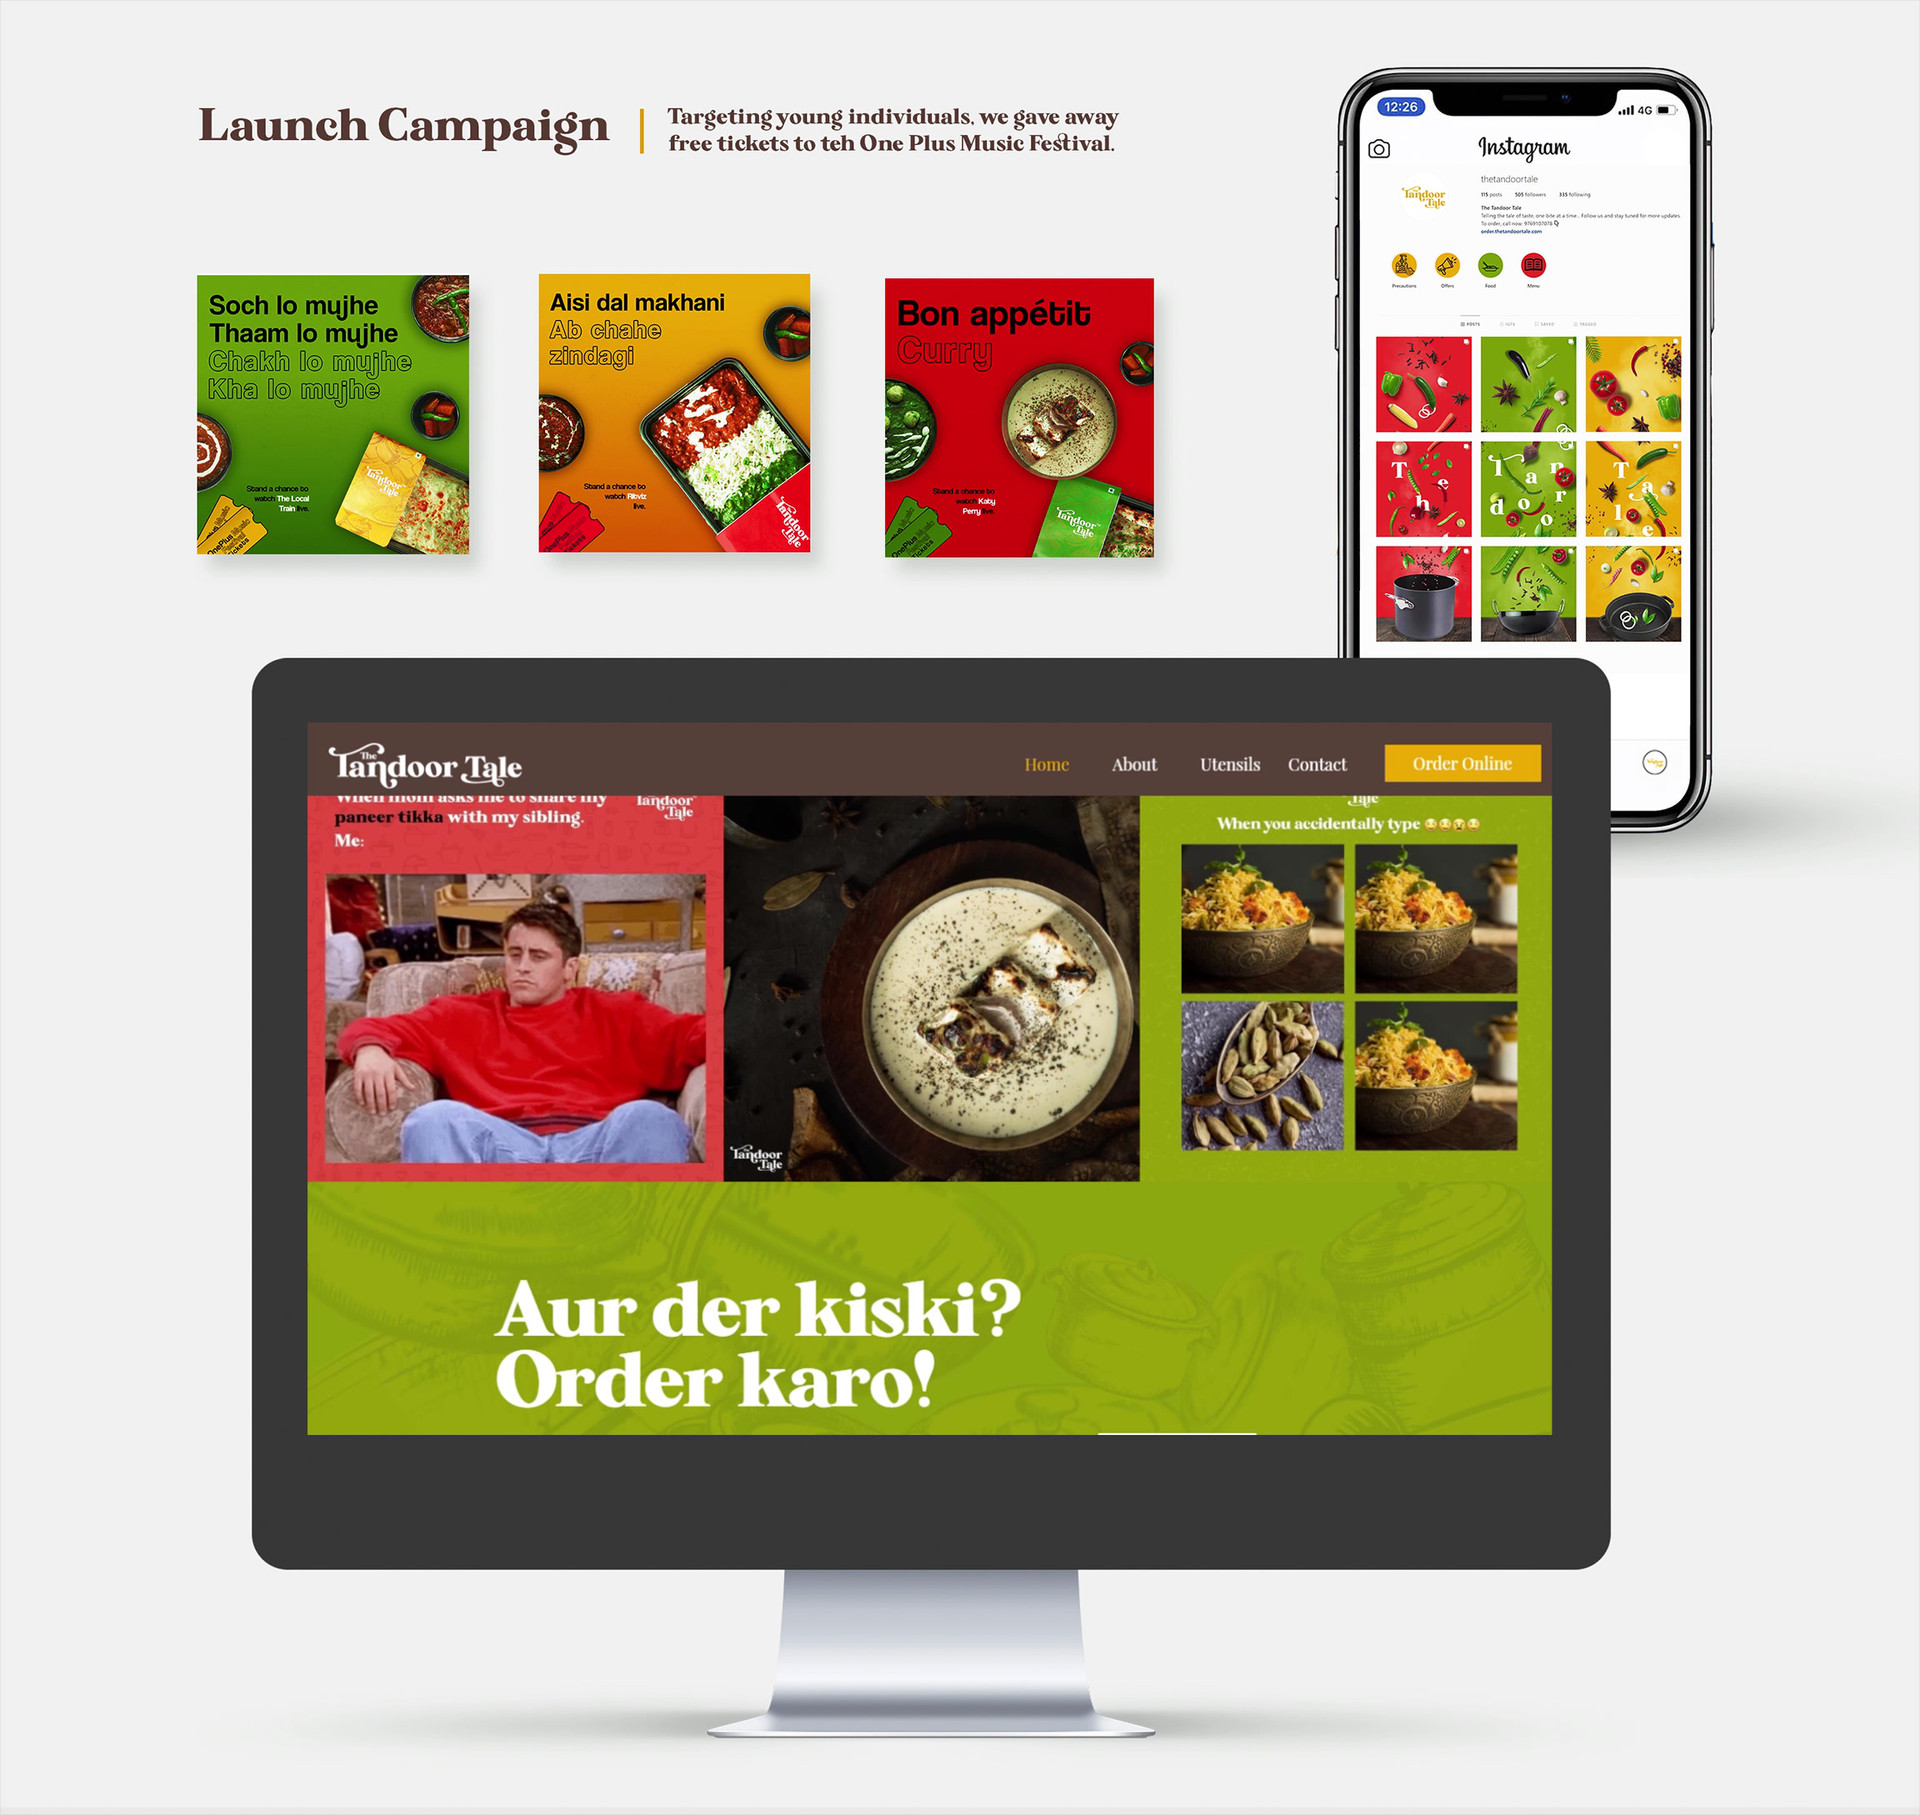 The tandoor tale website